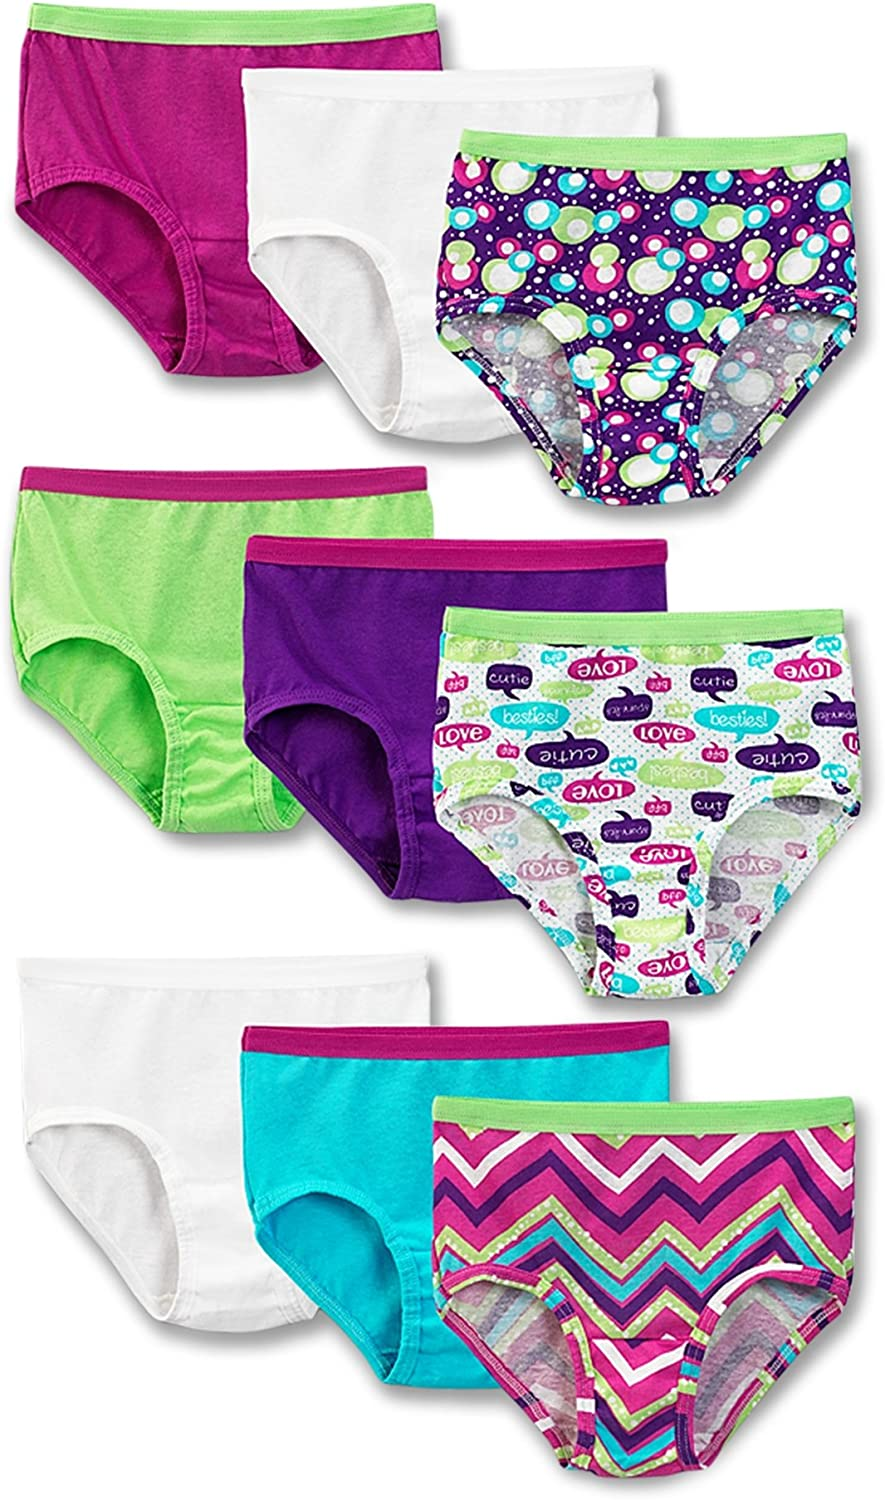 Fruit of the Loom Big Girls 9-Pack Briefs